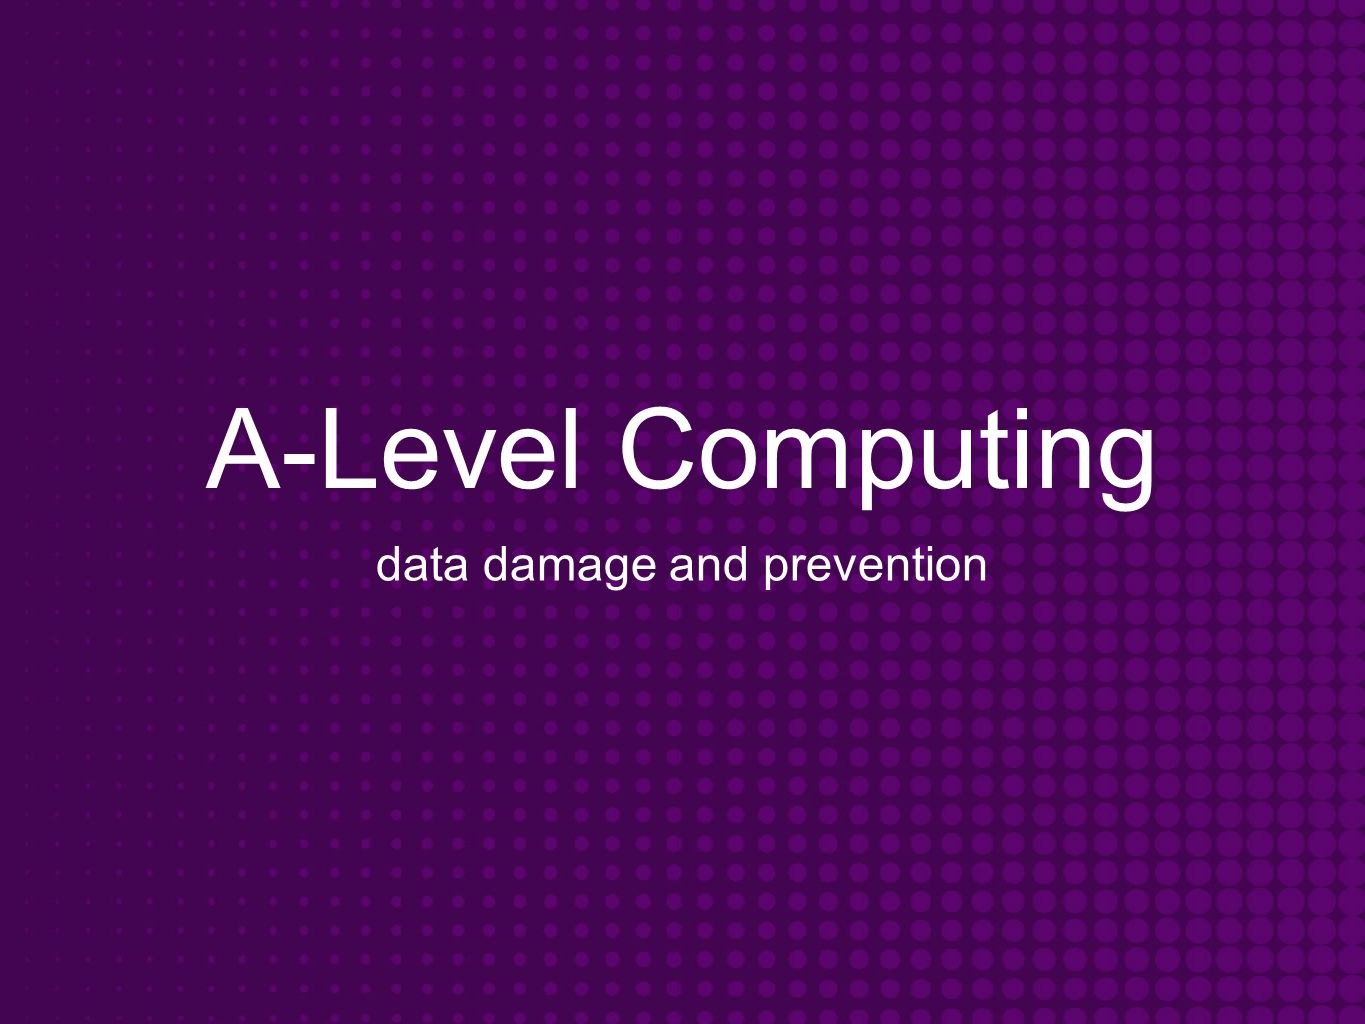 A-Level Computing data damage and prevention